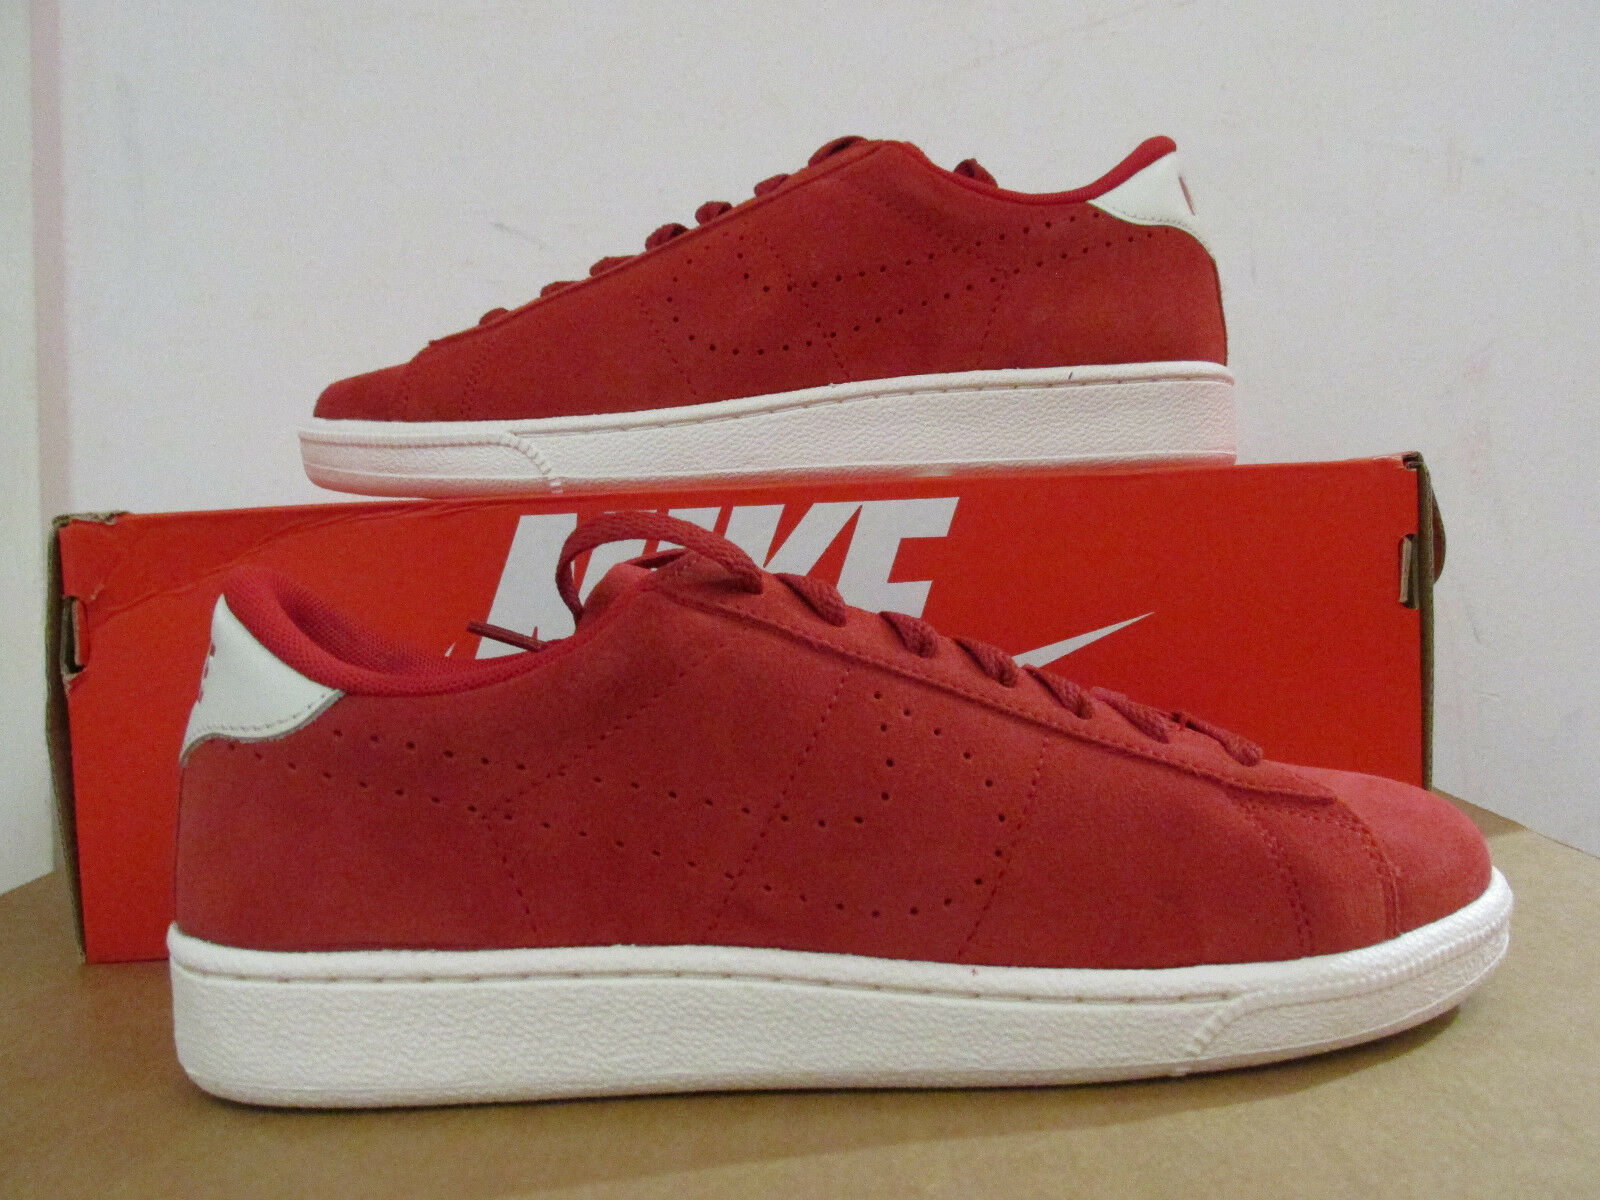 Nike Tennis Classic CS Suede mens Trainers 829351 600 sneakers CLEARANCE Wild casual shoes